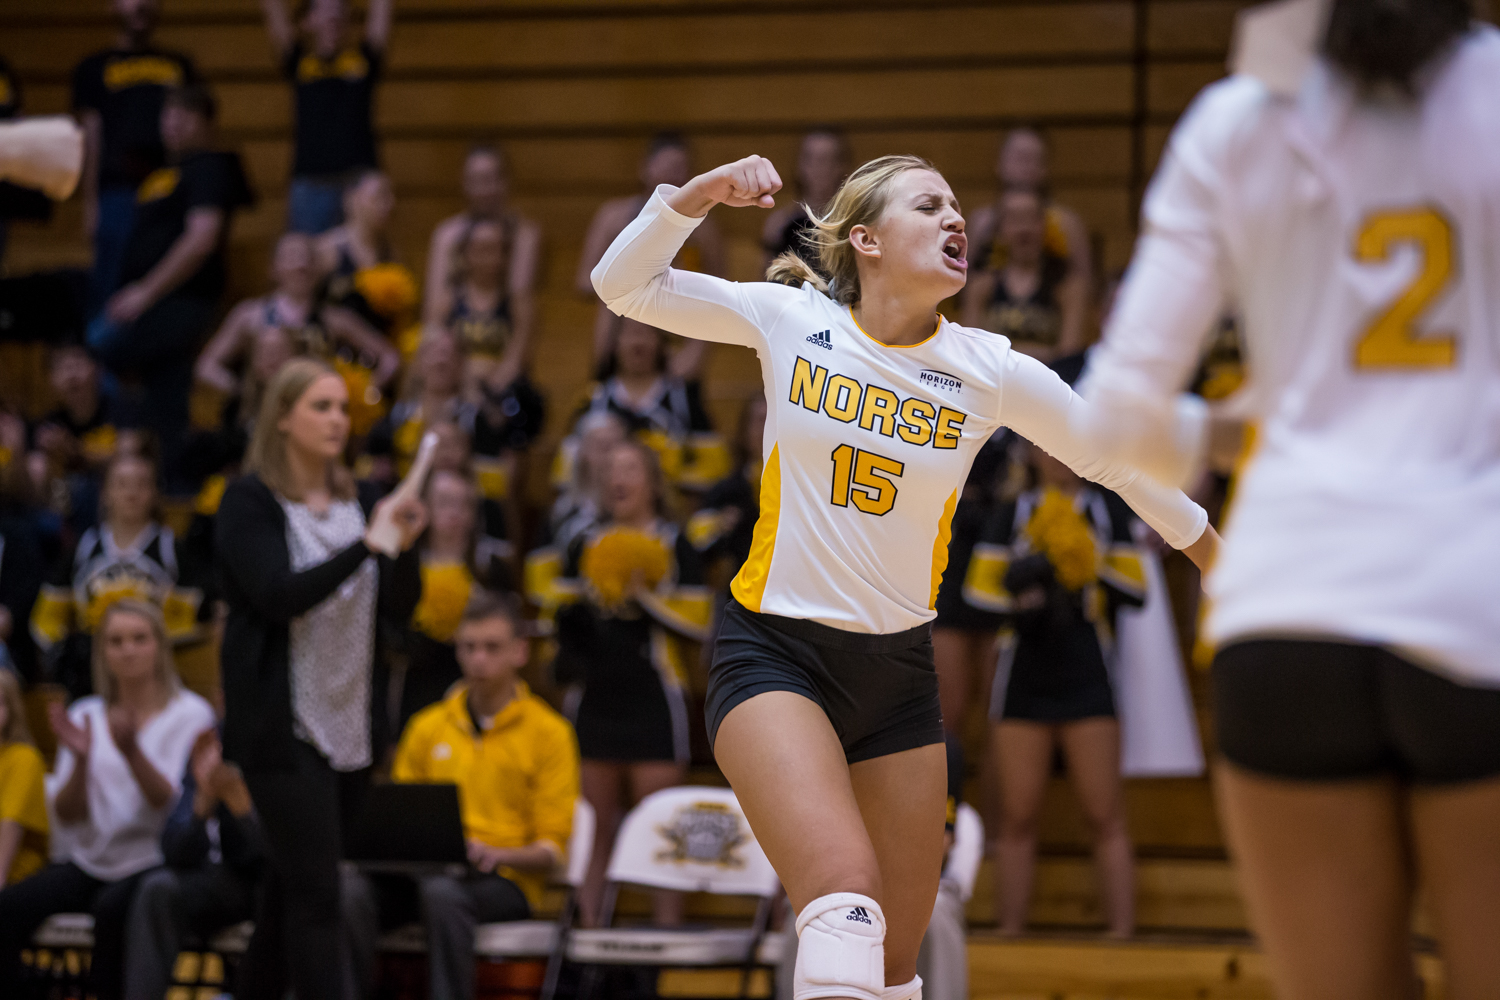 Maddy Weber (15) celebrates after a Norse point during the game against Oakland.